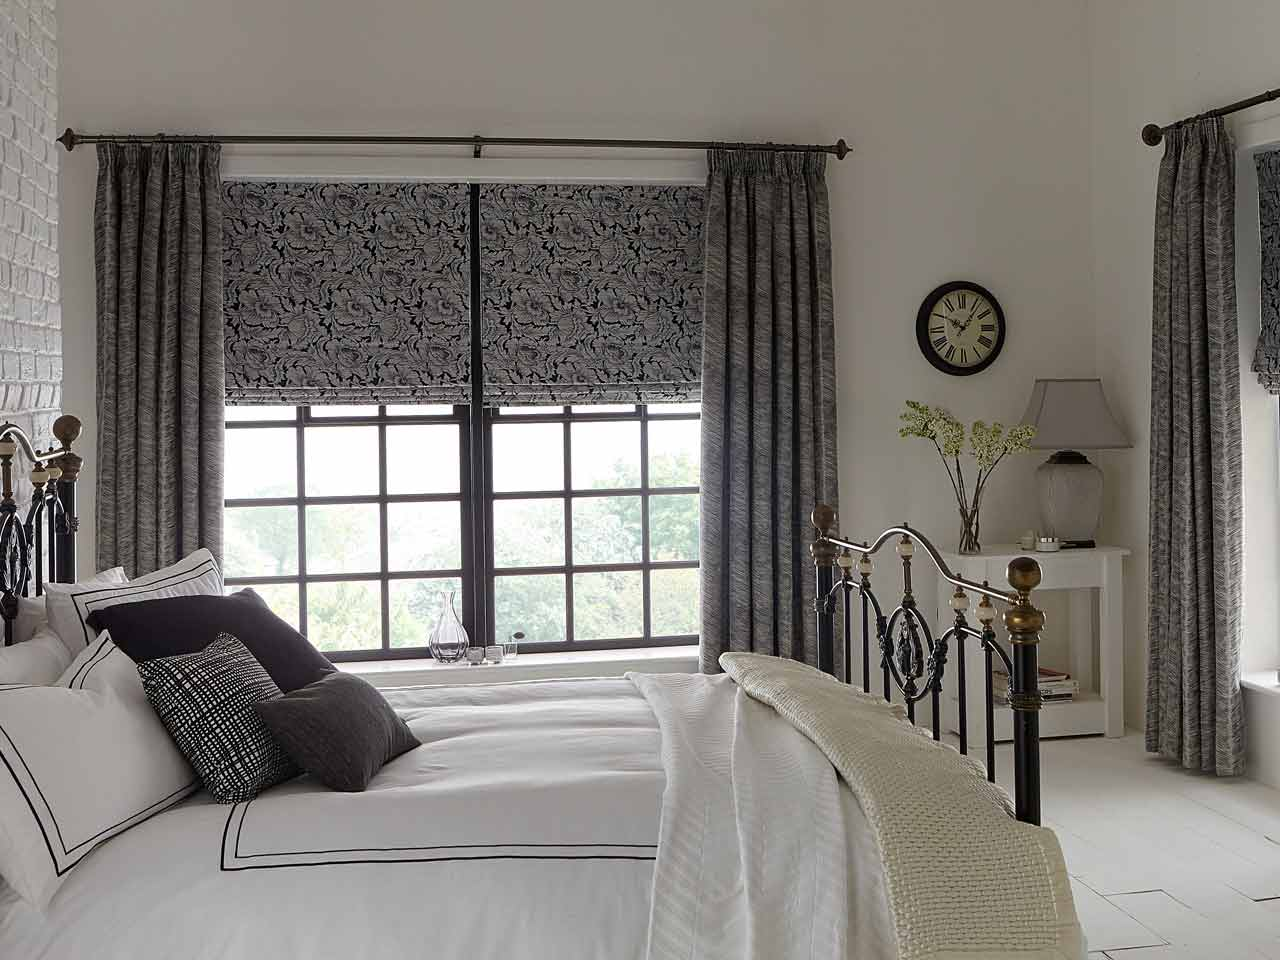 Image result for window pleats period house